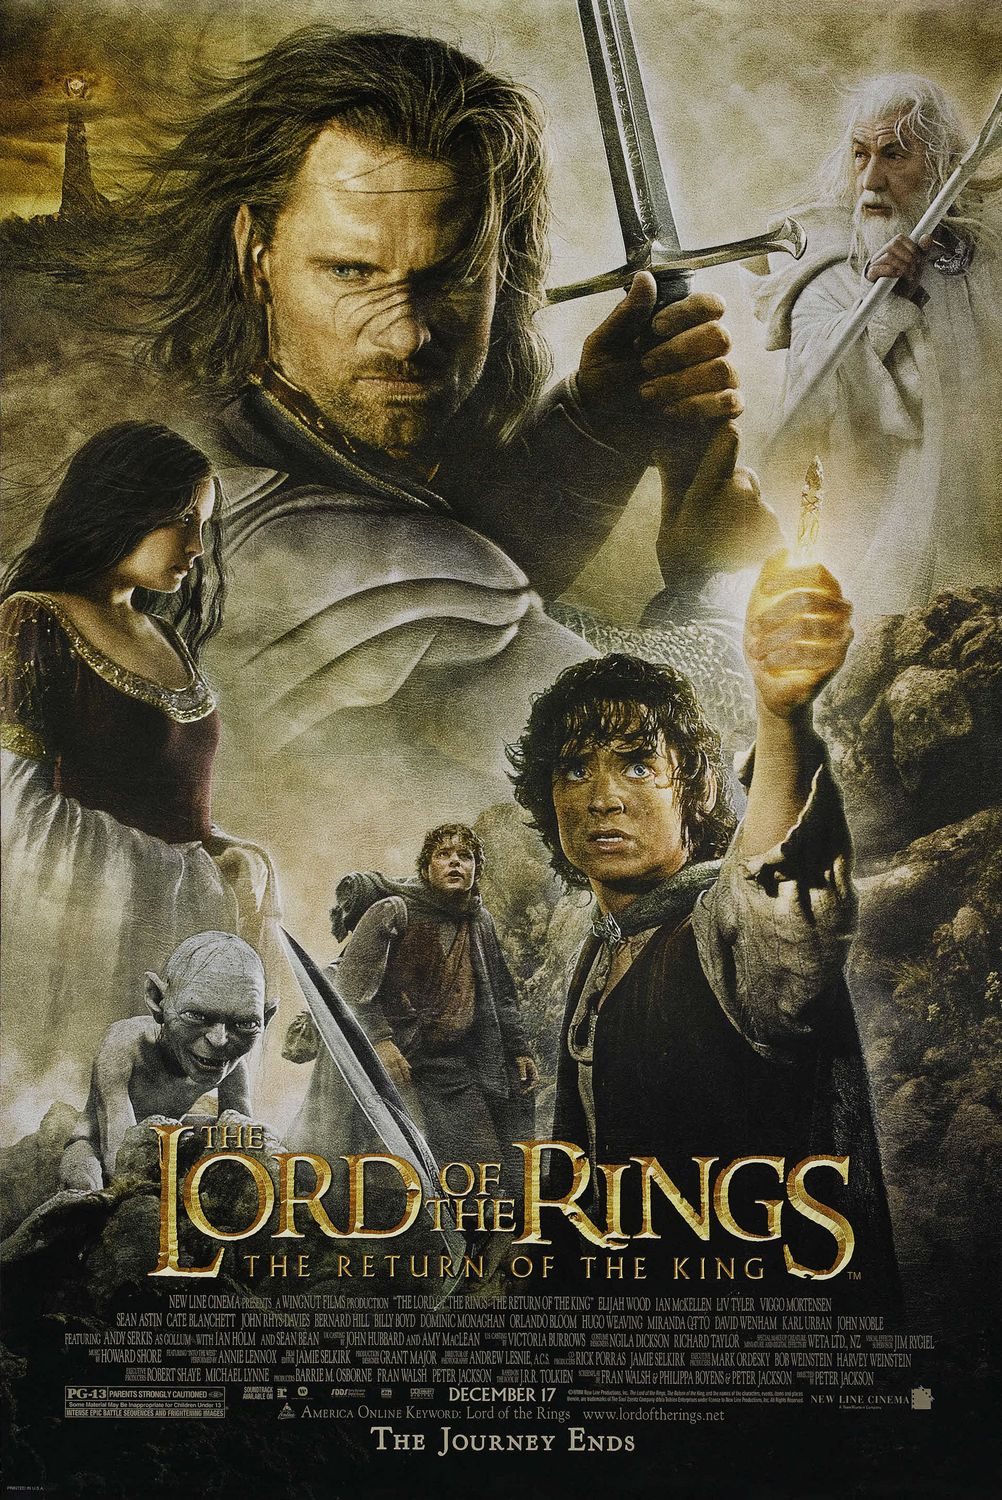 The Lord of the Rings: The Return of the King full movie